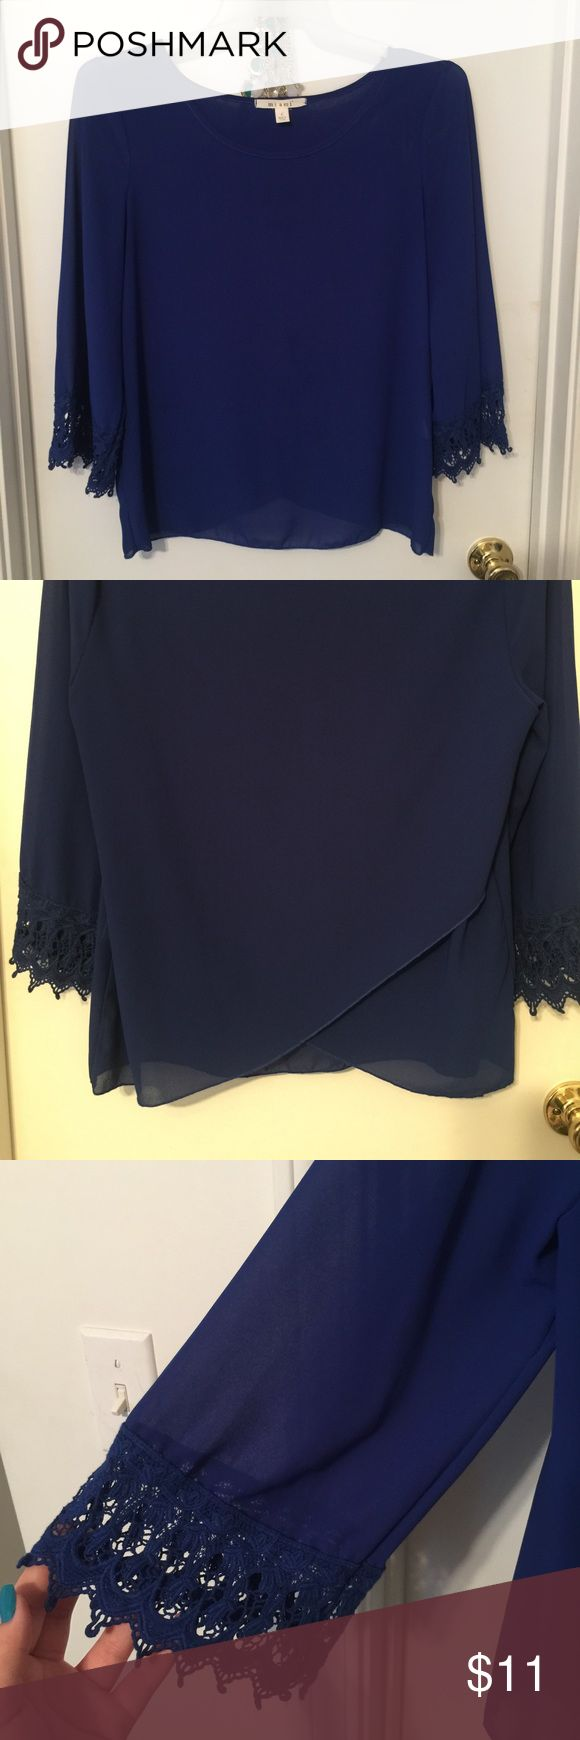 Francesca's collection long sleeve  Size Large Beautiful navy blue blouse with unique back(shown in 2nd picture)-doesn't open up fully to show entire back but does have a slit- end of sleeves are crochet and third picture shows the thin material (this is beautiful with a white bandeau underneath :) ) Francesca's Collections Tops Blouses